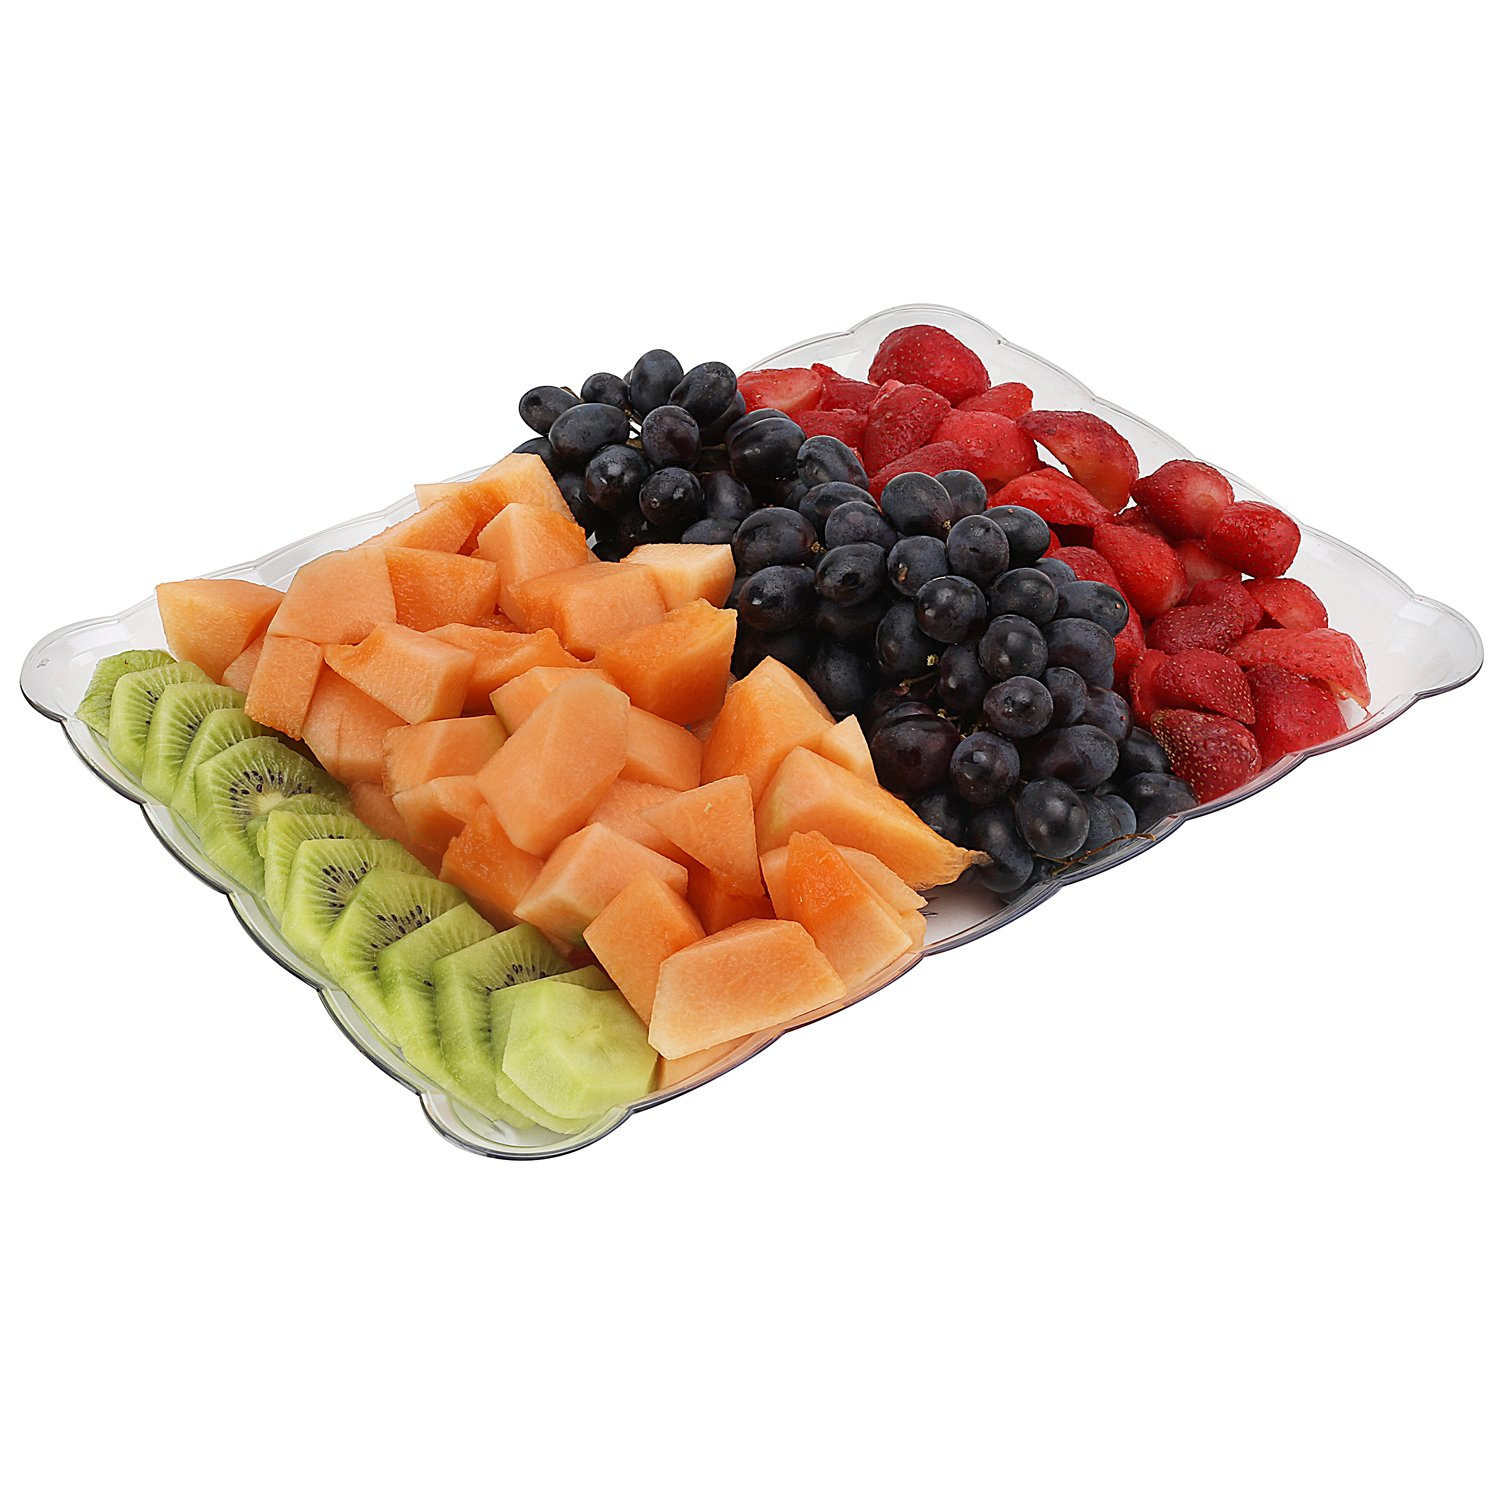 silver collection Rectangular Crystal clear Plastic Trays, disposable serving Party Platters 9